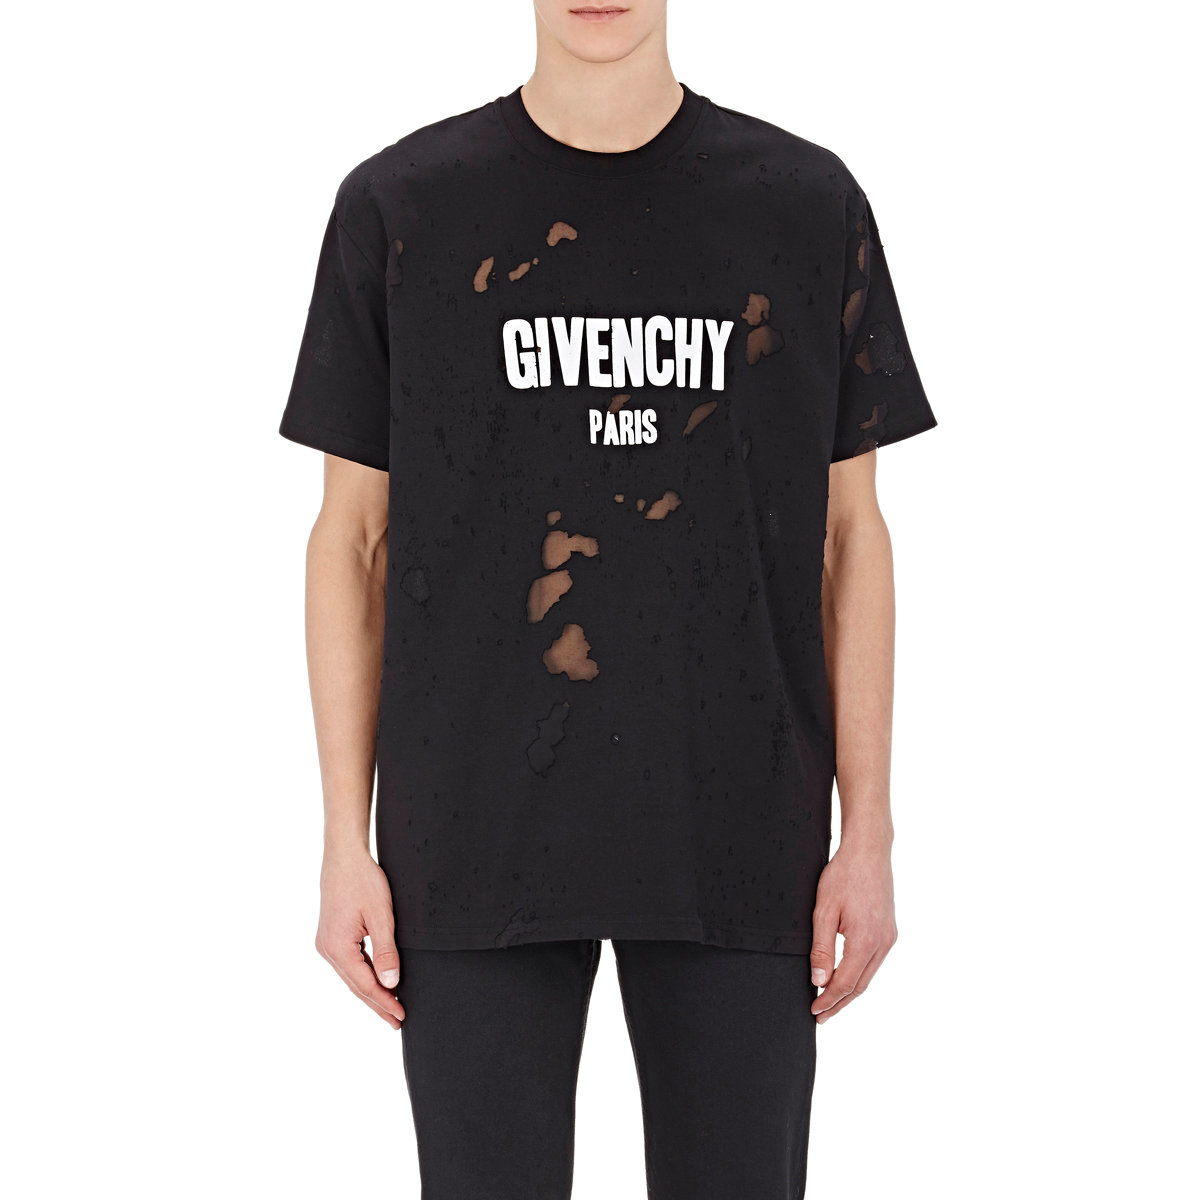 Givenchy Shirt For Men Photo Album Best Fashion Trends